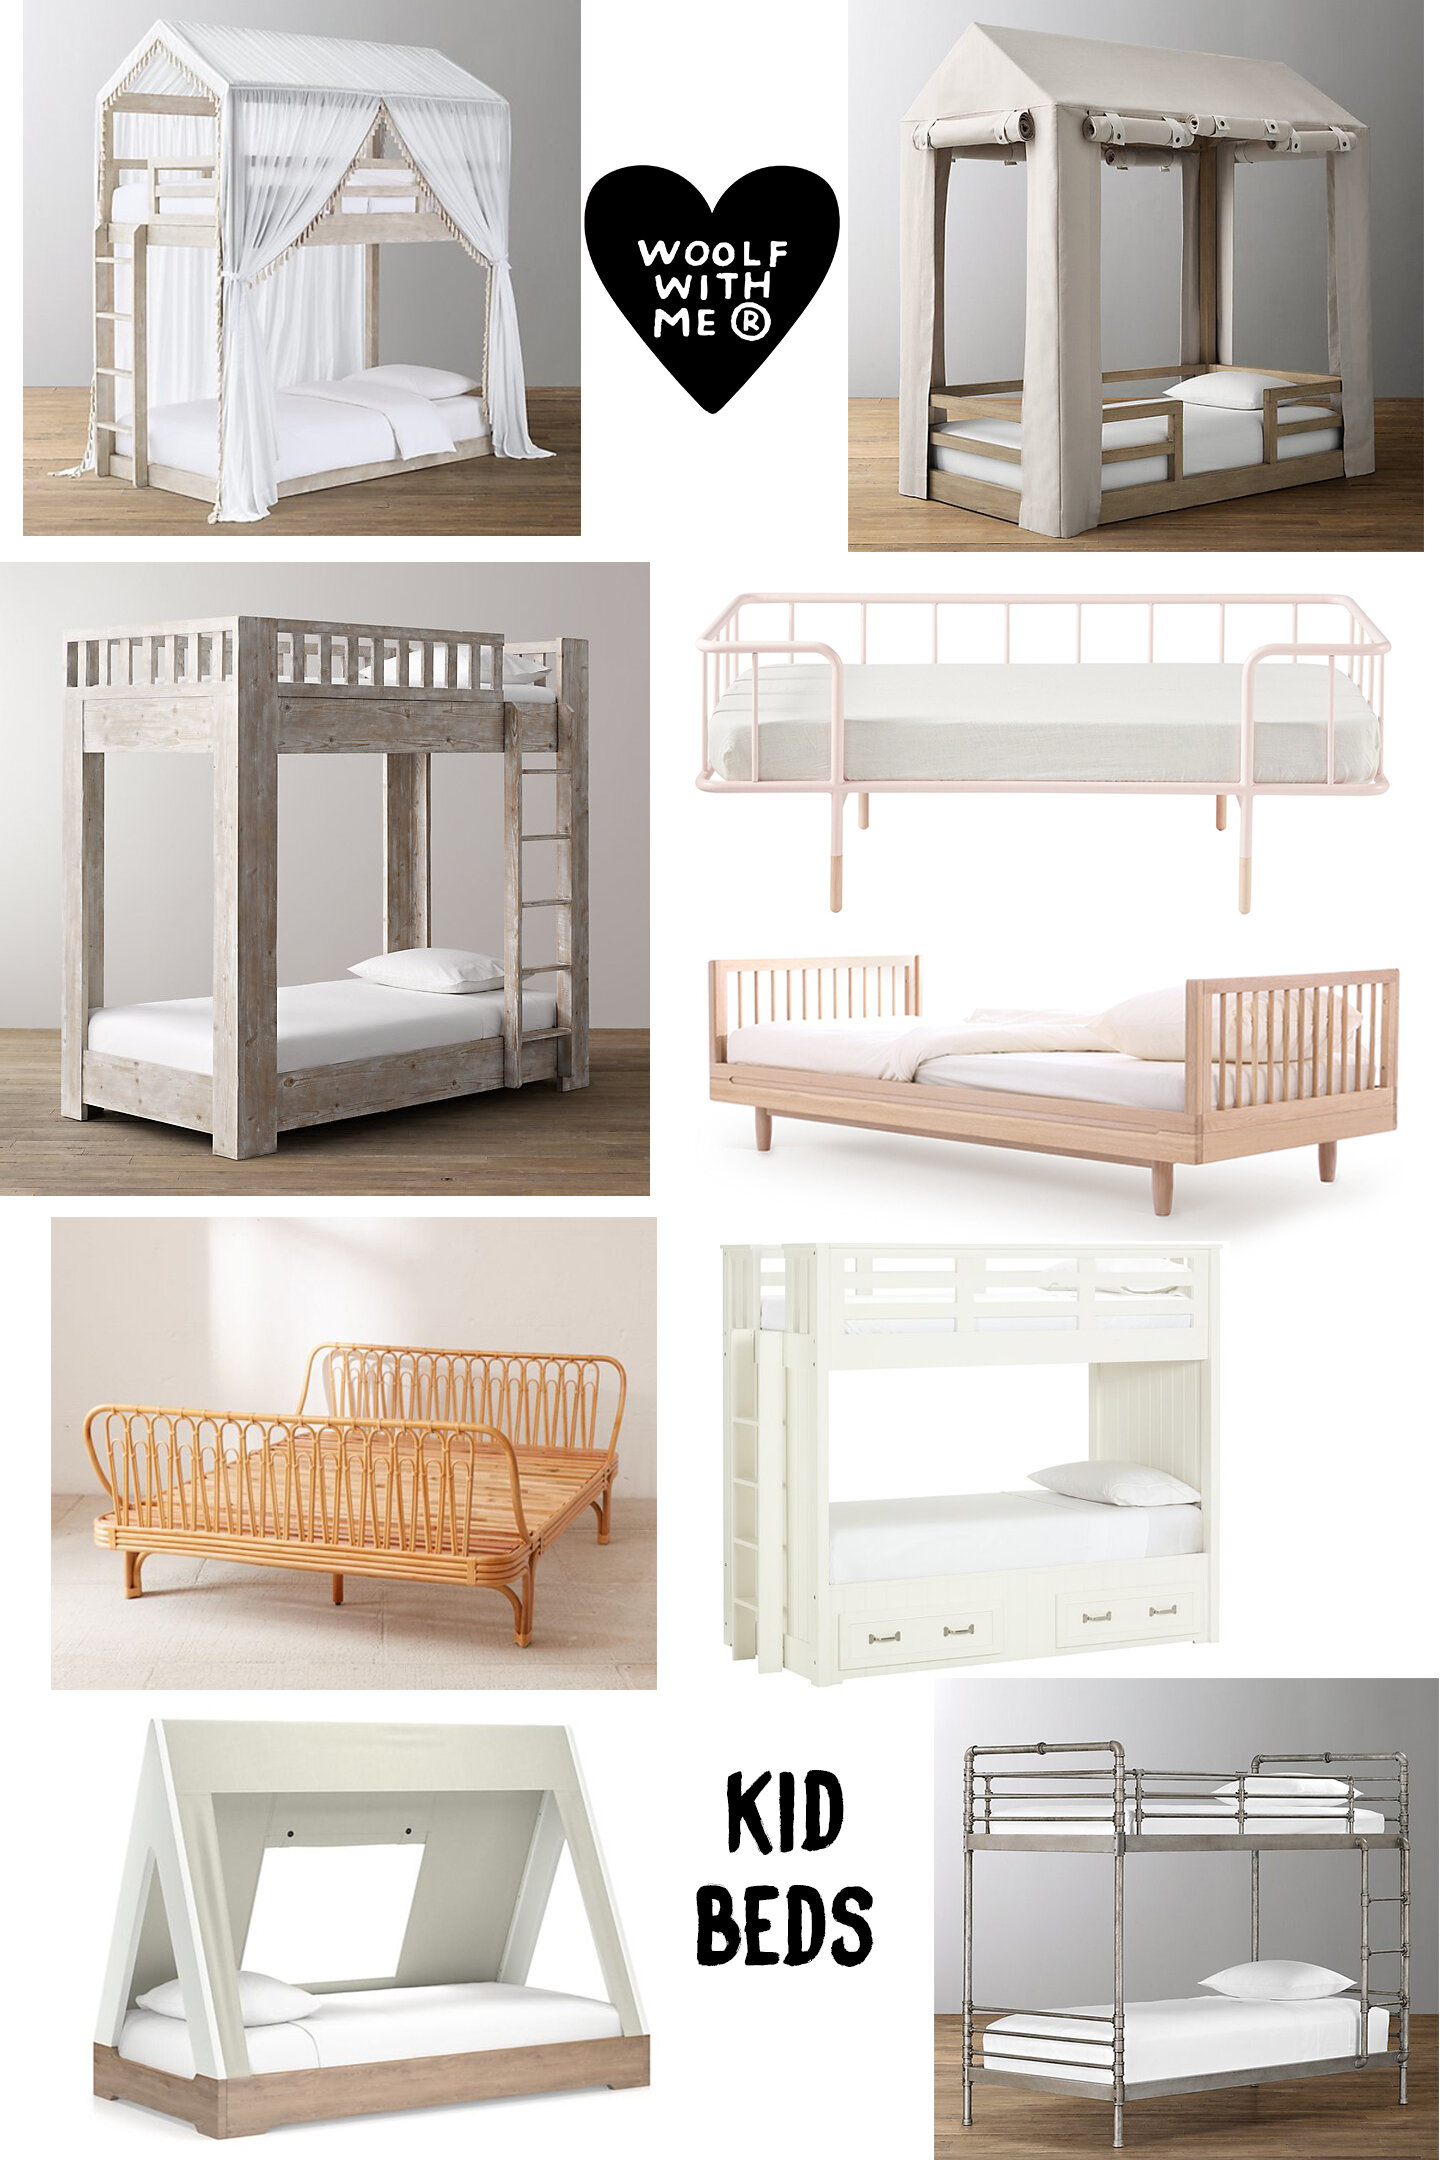 Picture of: Kids Toddler Beds Twin Beds Bunk Beds Woolf Talk